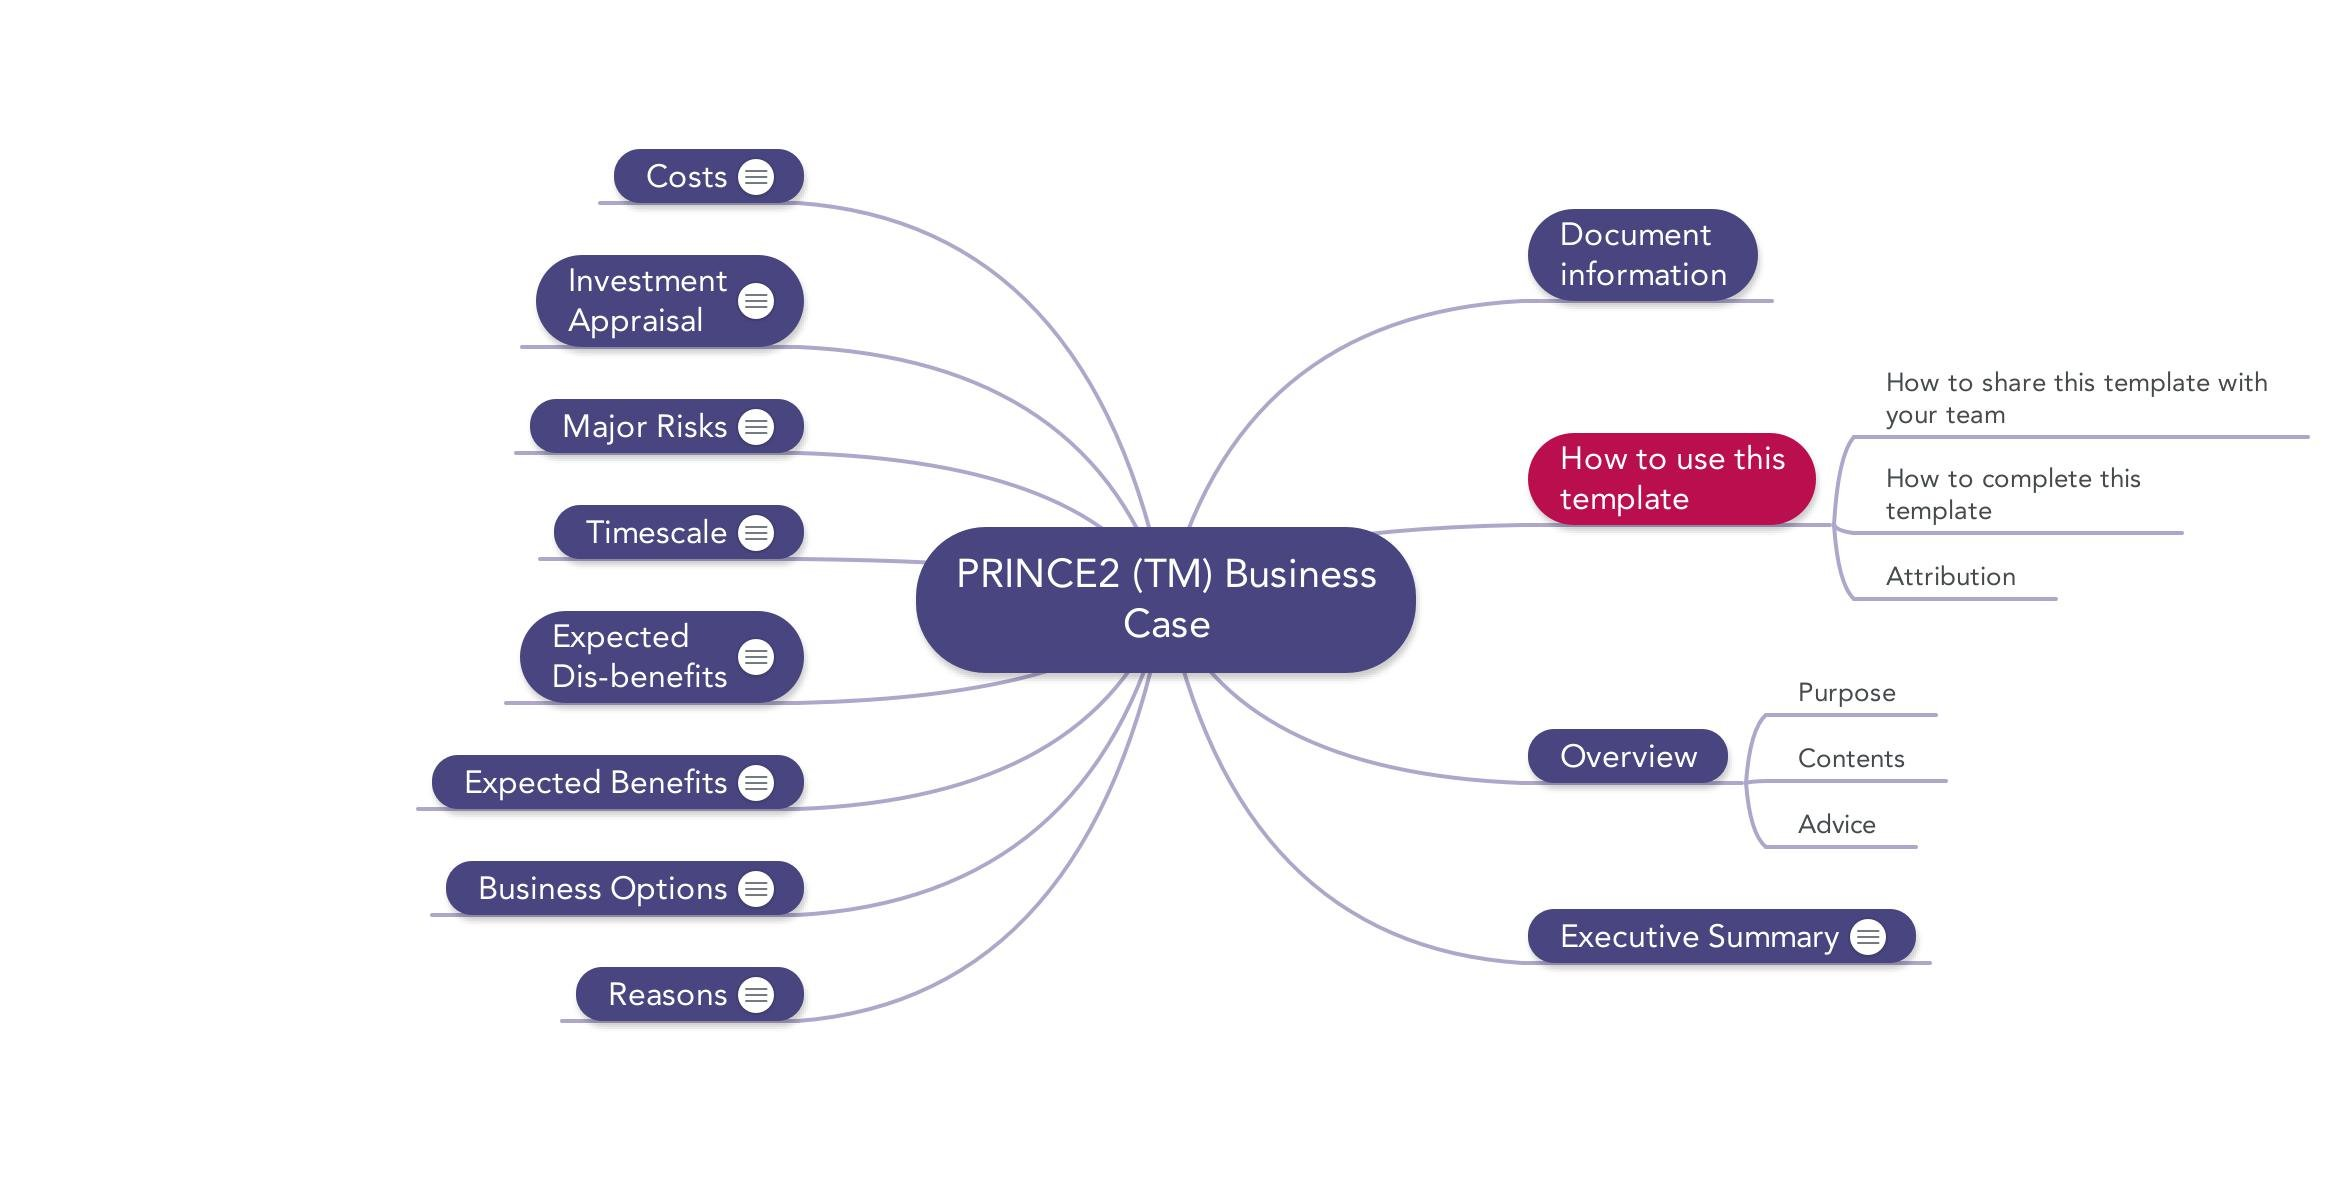 Prince2 business case download template prince2 business case flashek Gallery